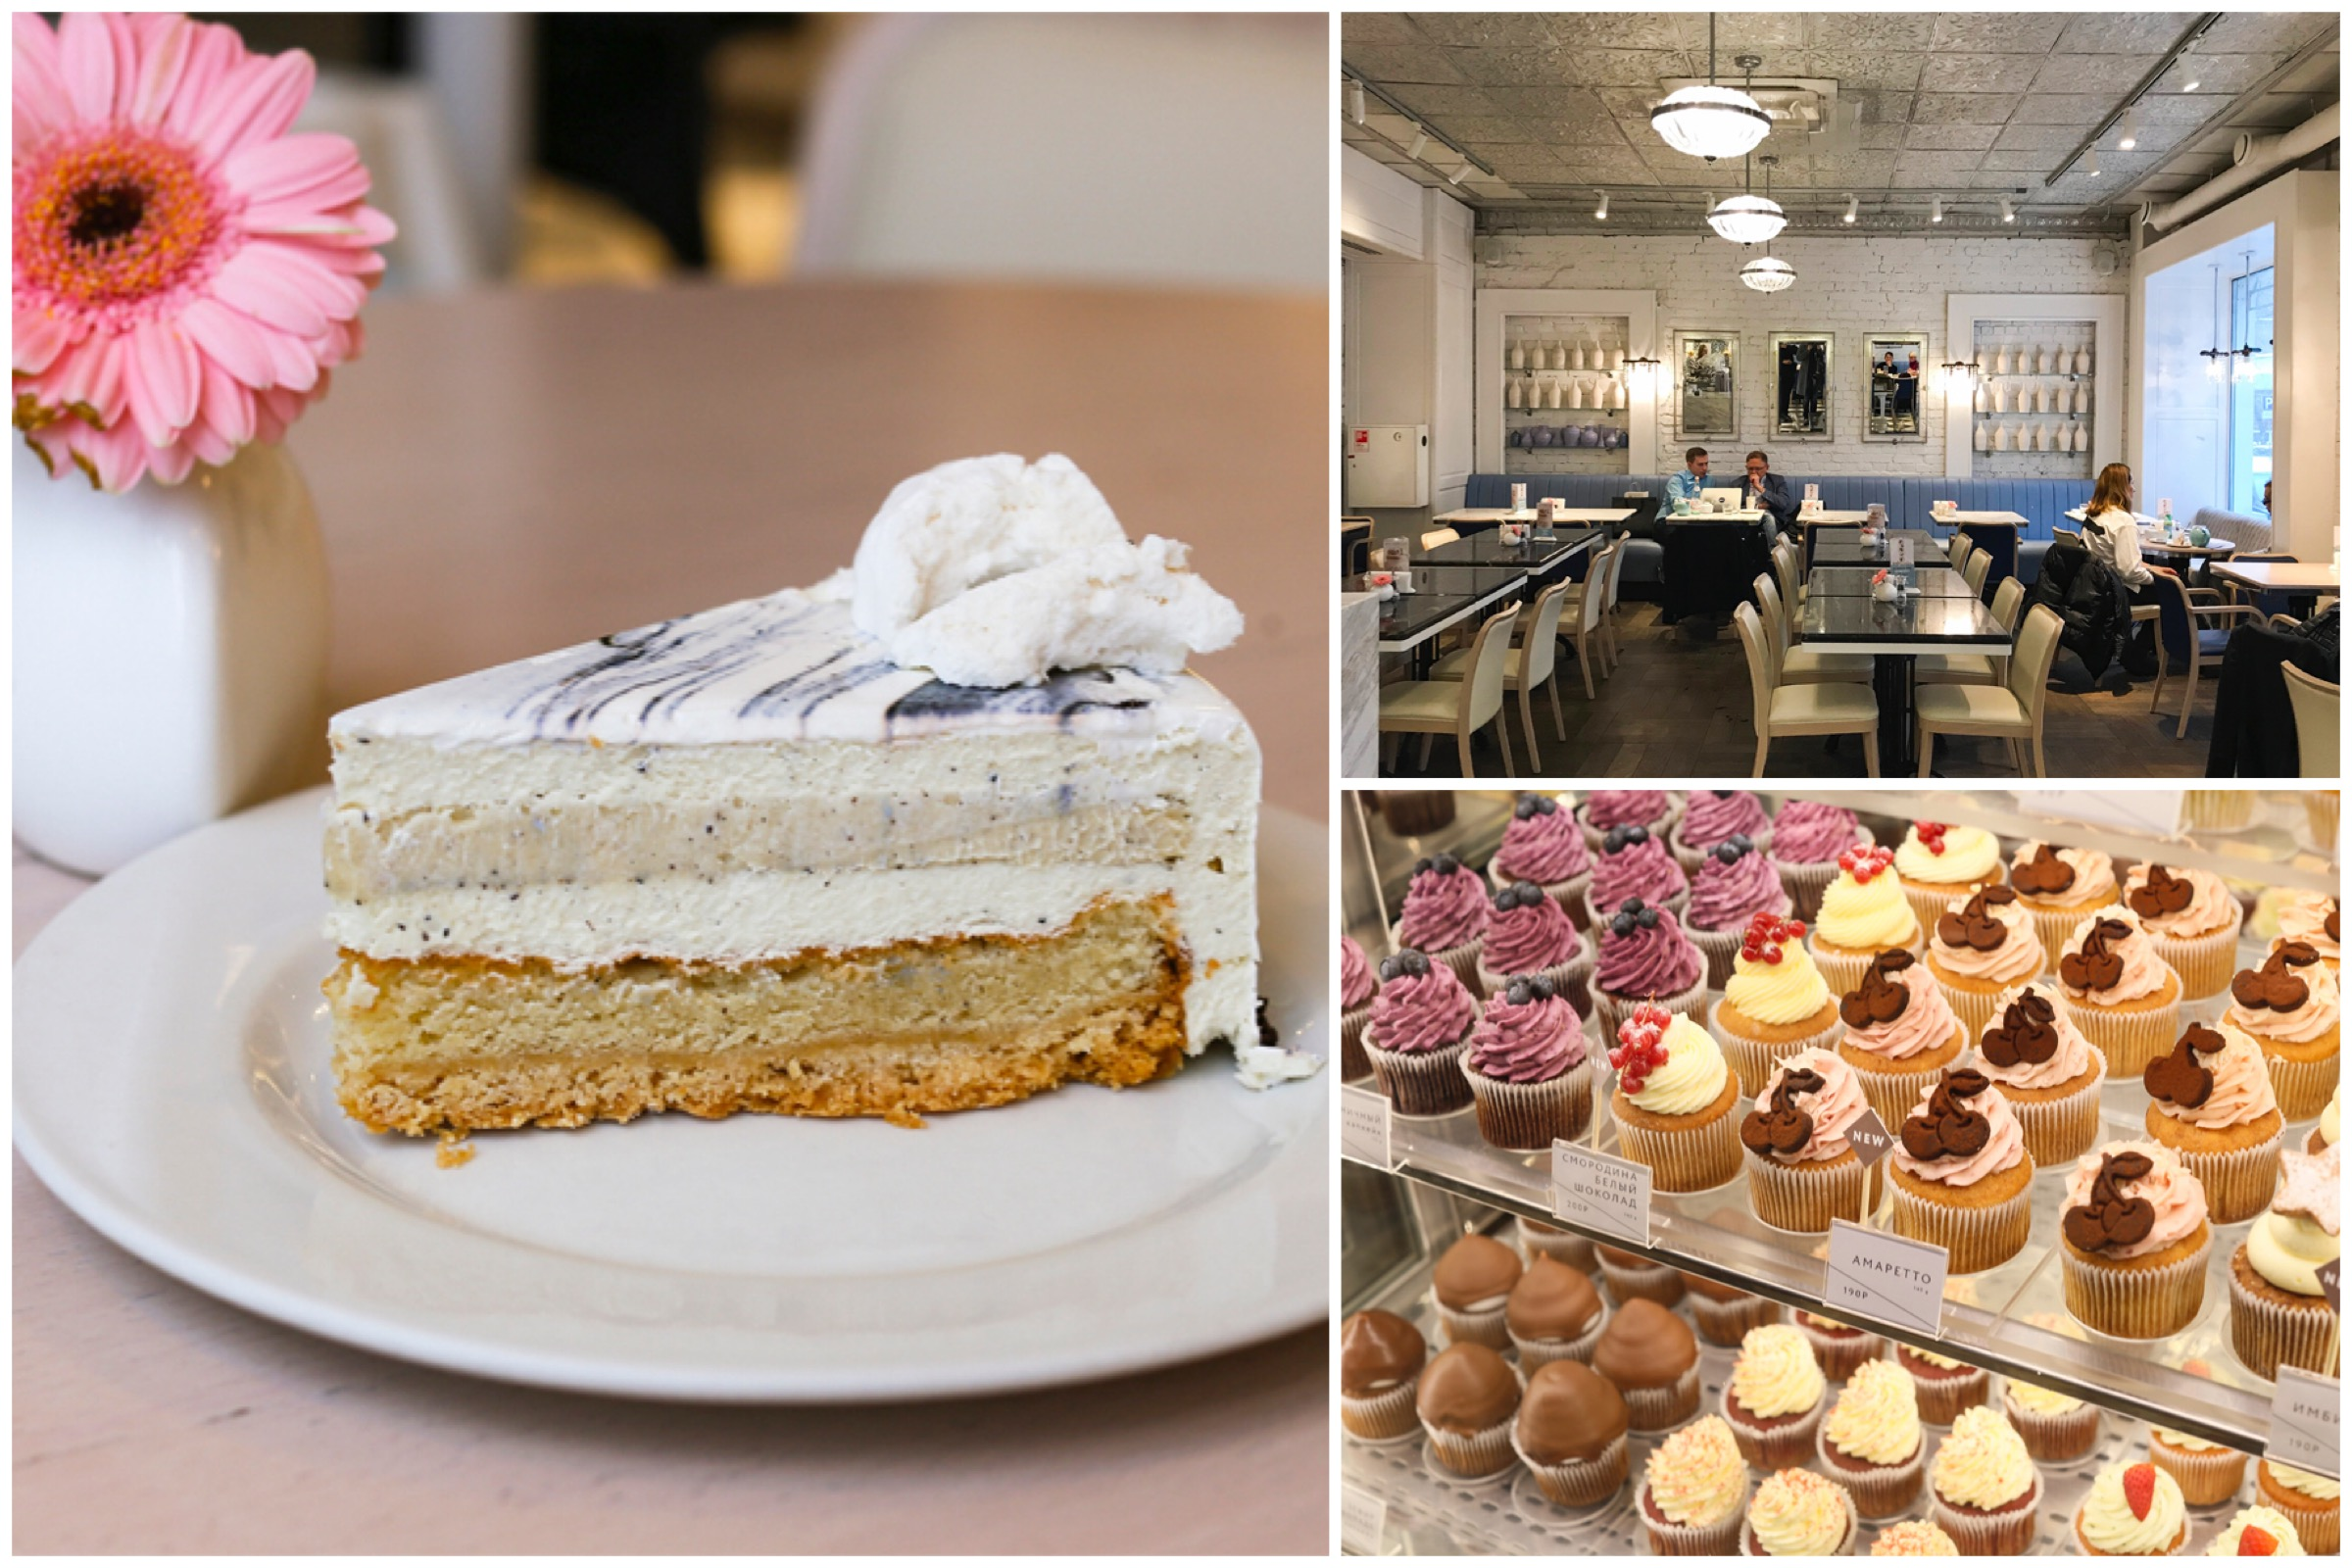 Upside Down Cake Co. - One Of Moscow's Best Cake Shop & Cafe, With Insta-worthy Desserts & Interior